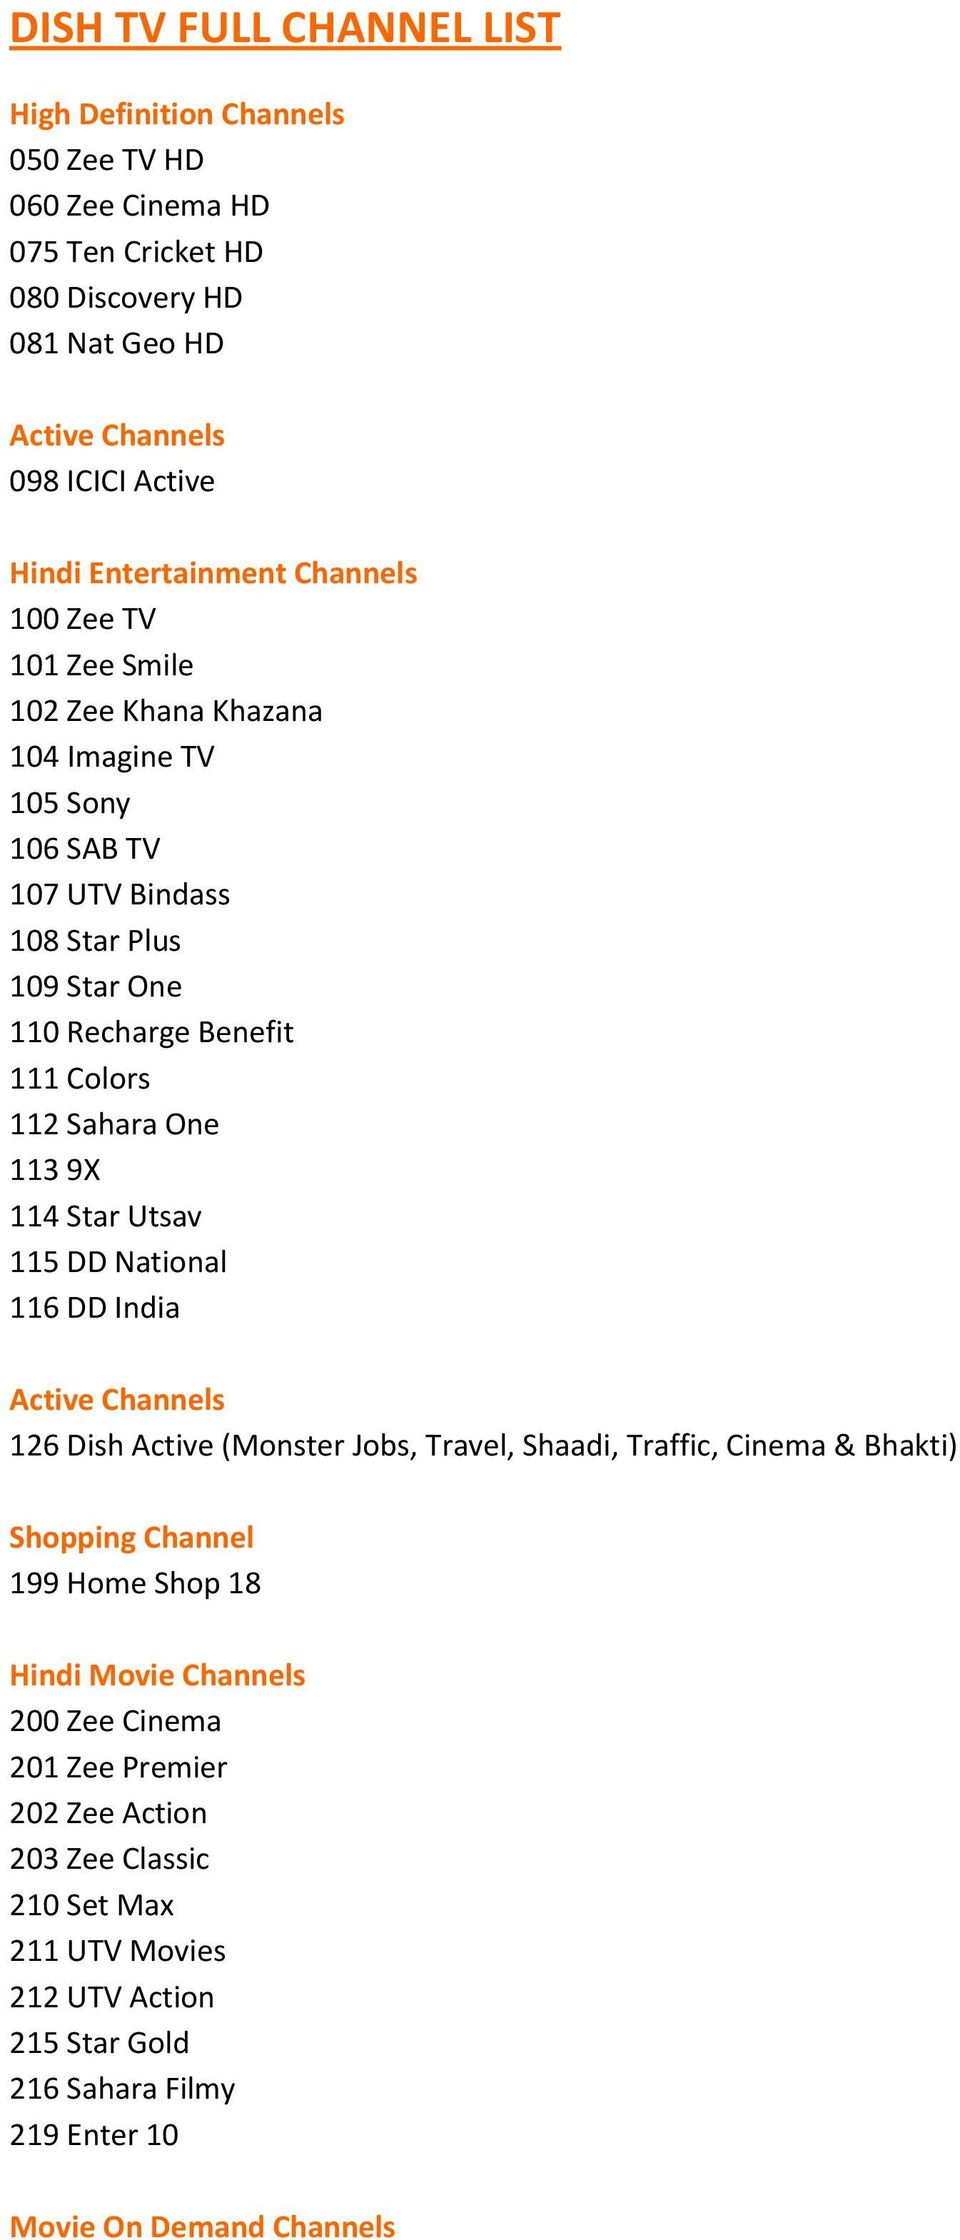 DISH TV FULL CHANNEL LIST - PDF